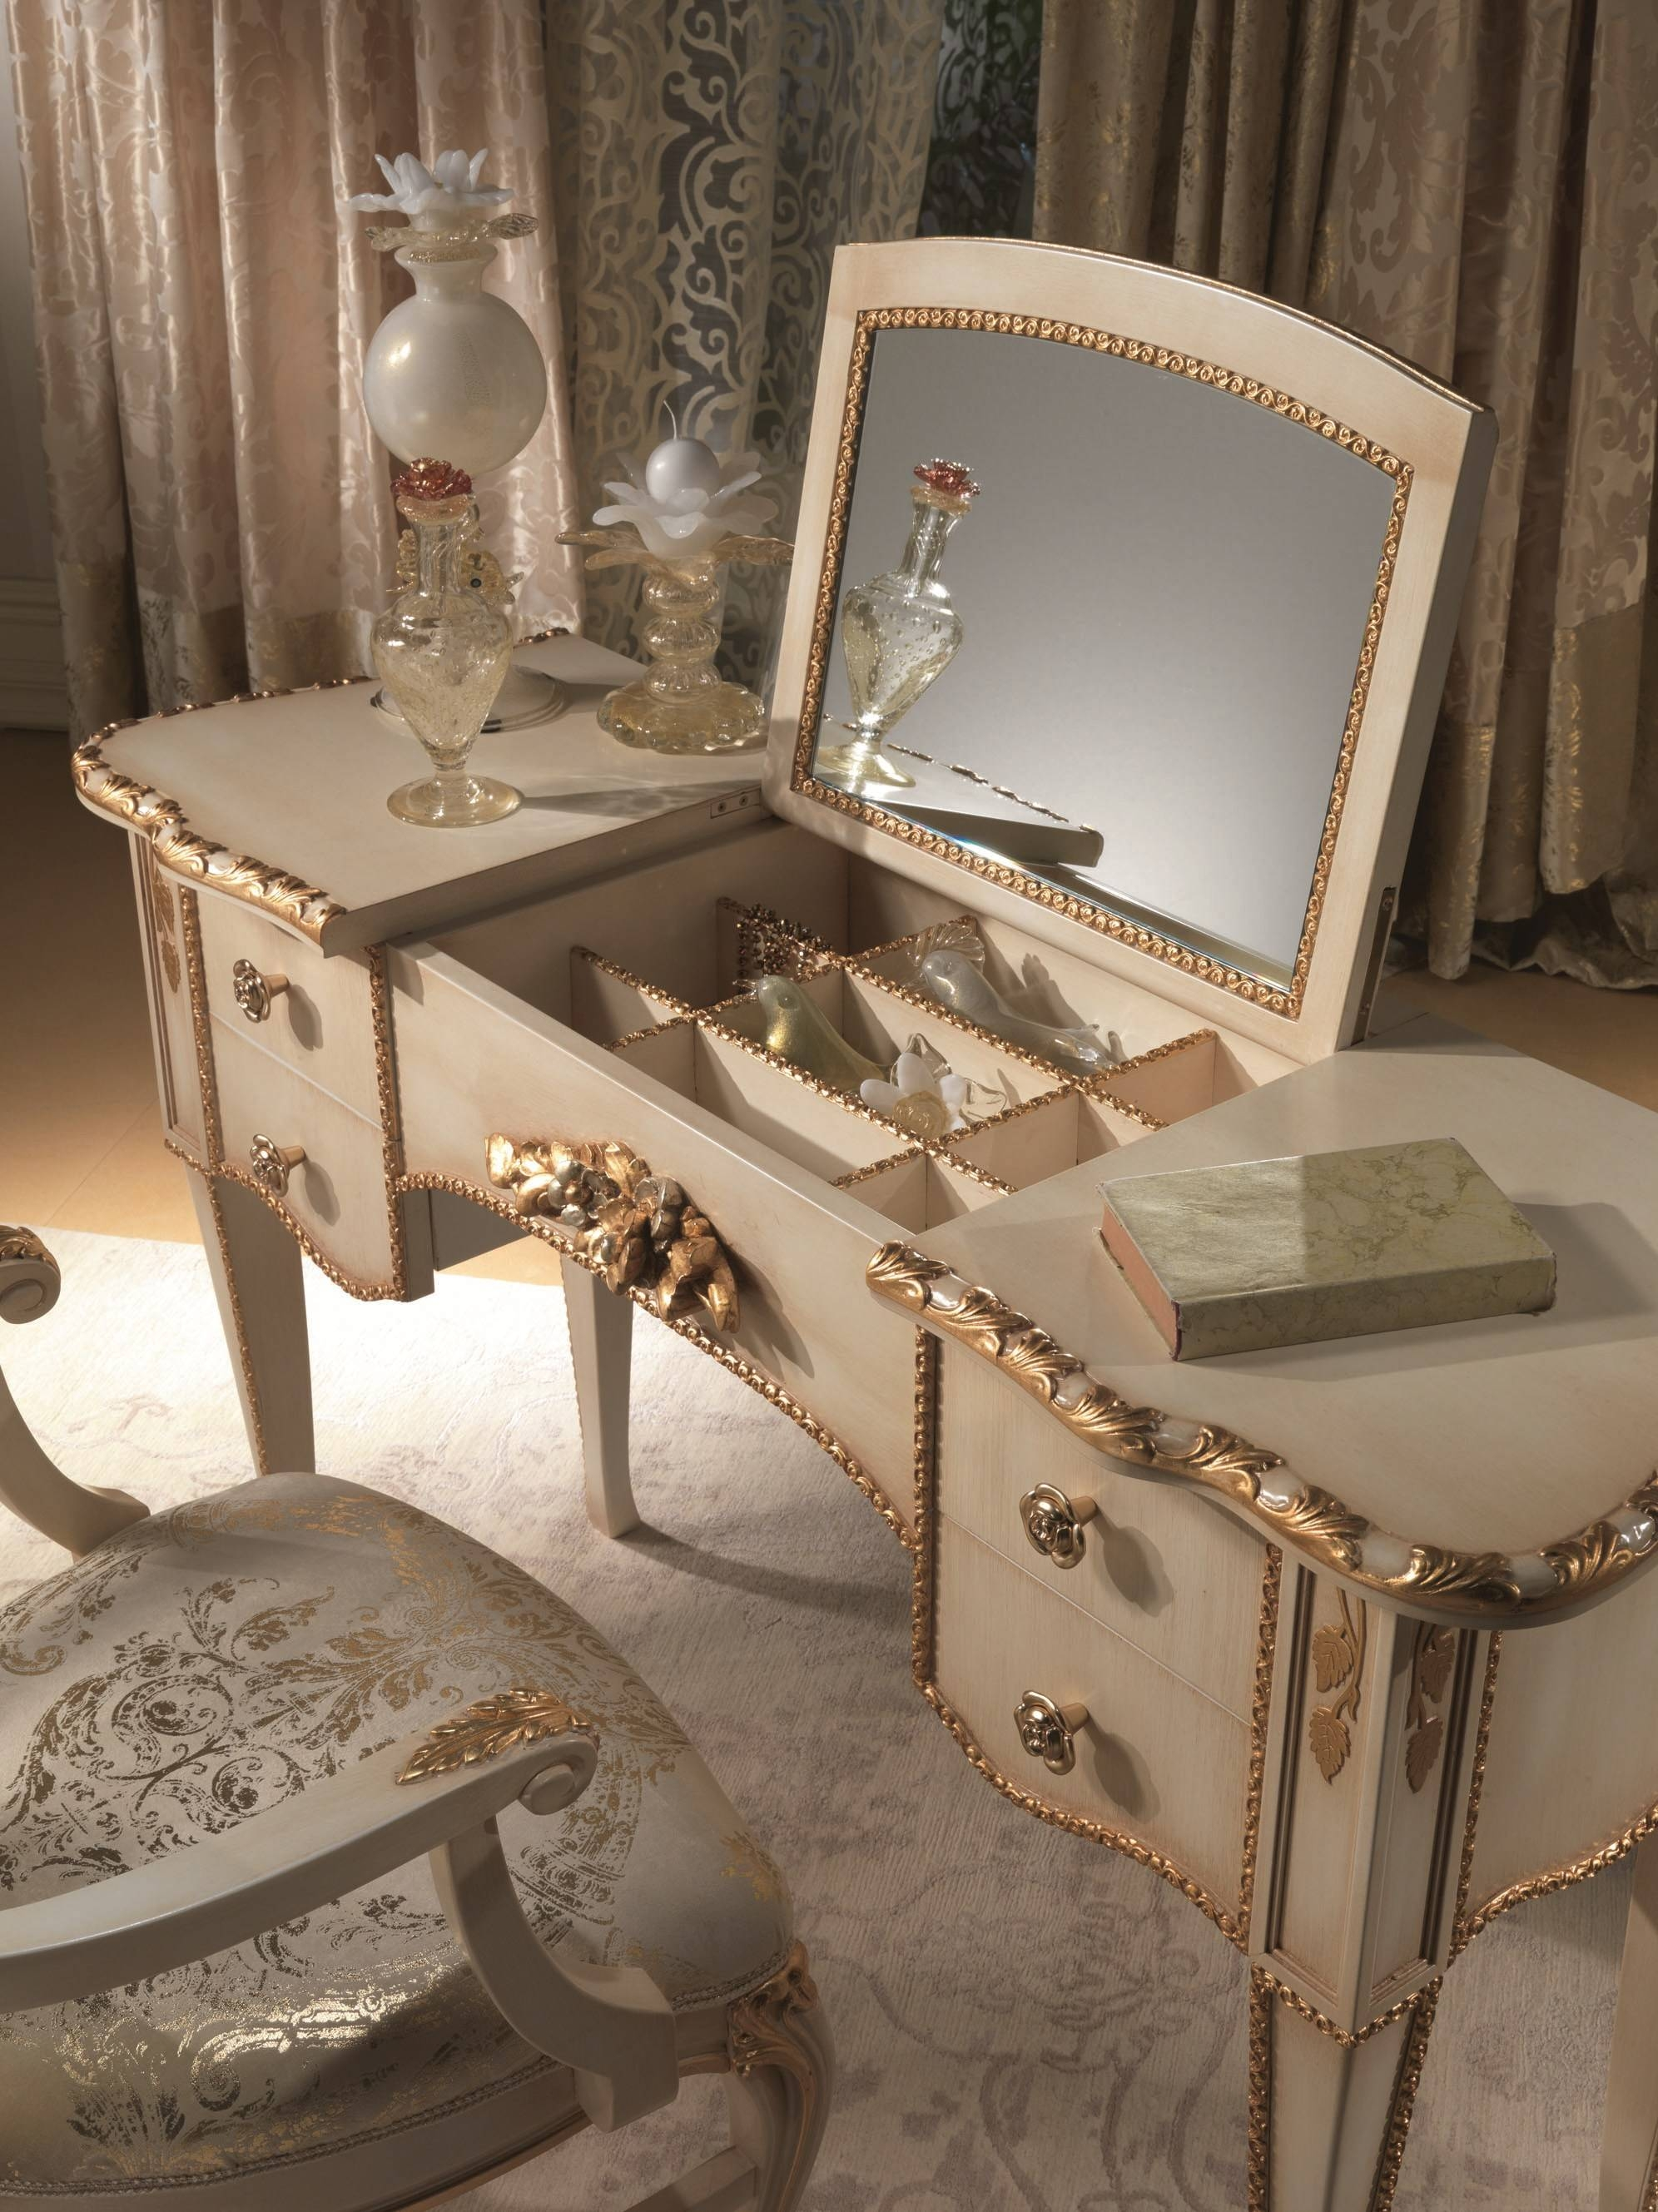 Vintage Style Dressing Table Mirrors - Dress Style intended for Vintage Style Mirrors (Image 23 of 25)